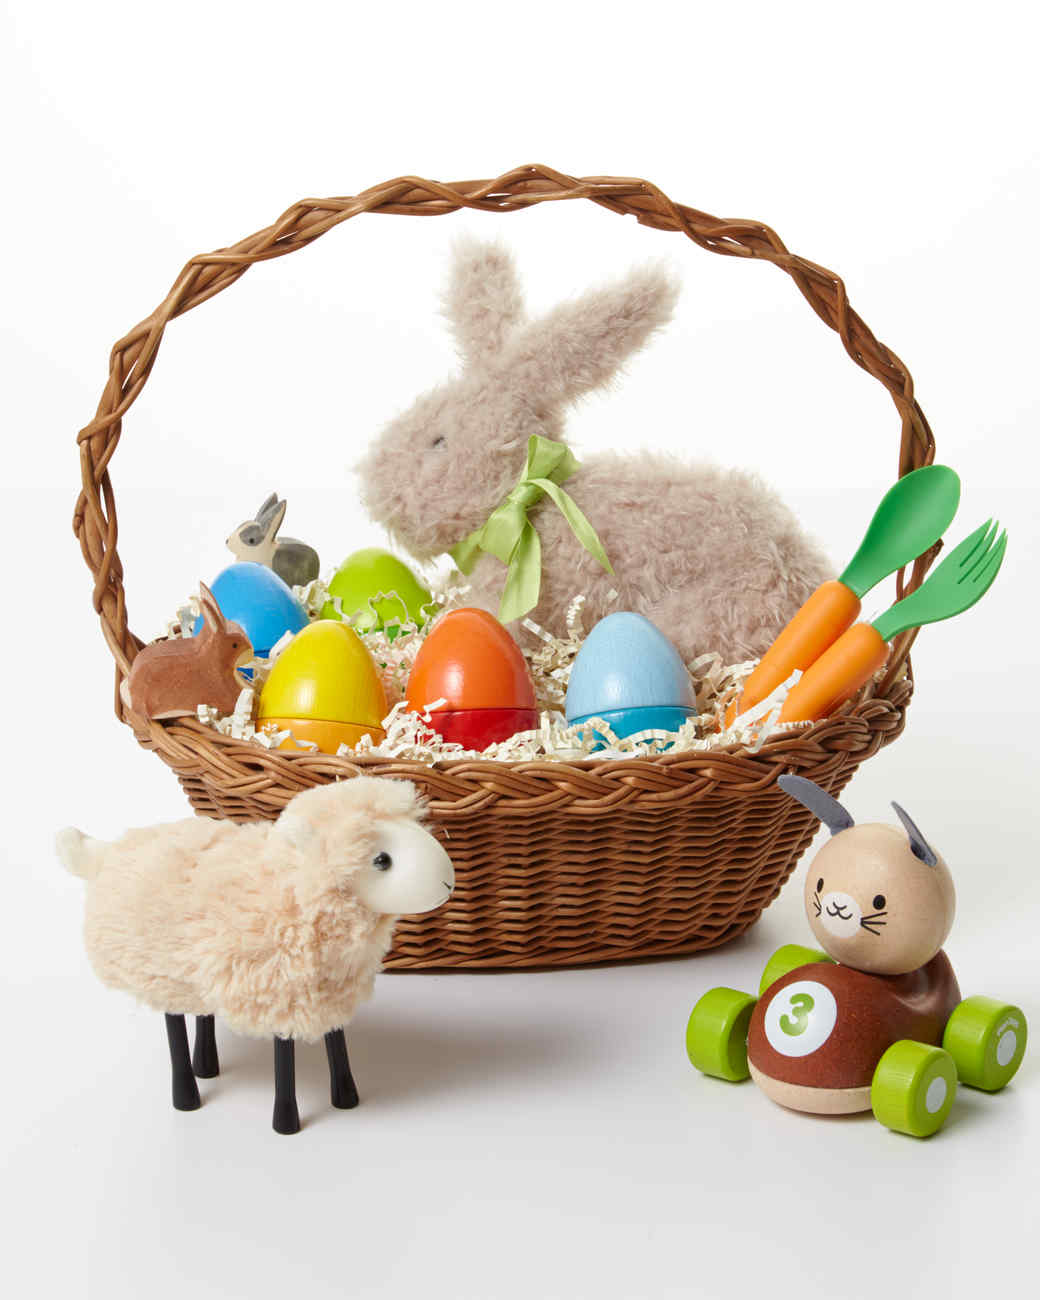 9 adorable easter basket ideas for toddlers martha stewart 9 adorable easter basket ideas for toddlers negle Choice Image